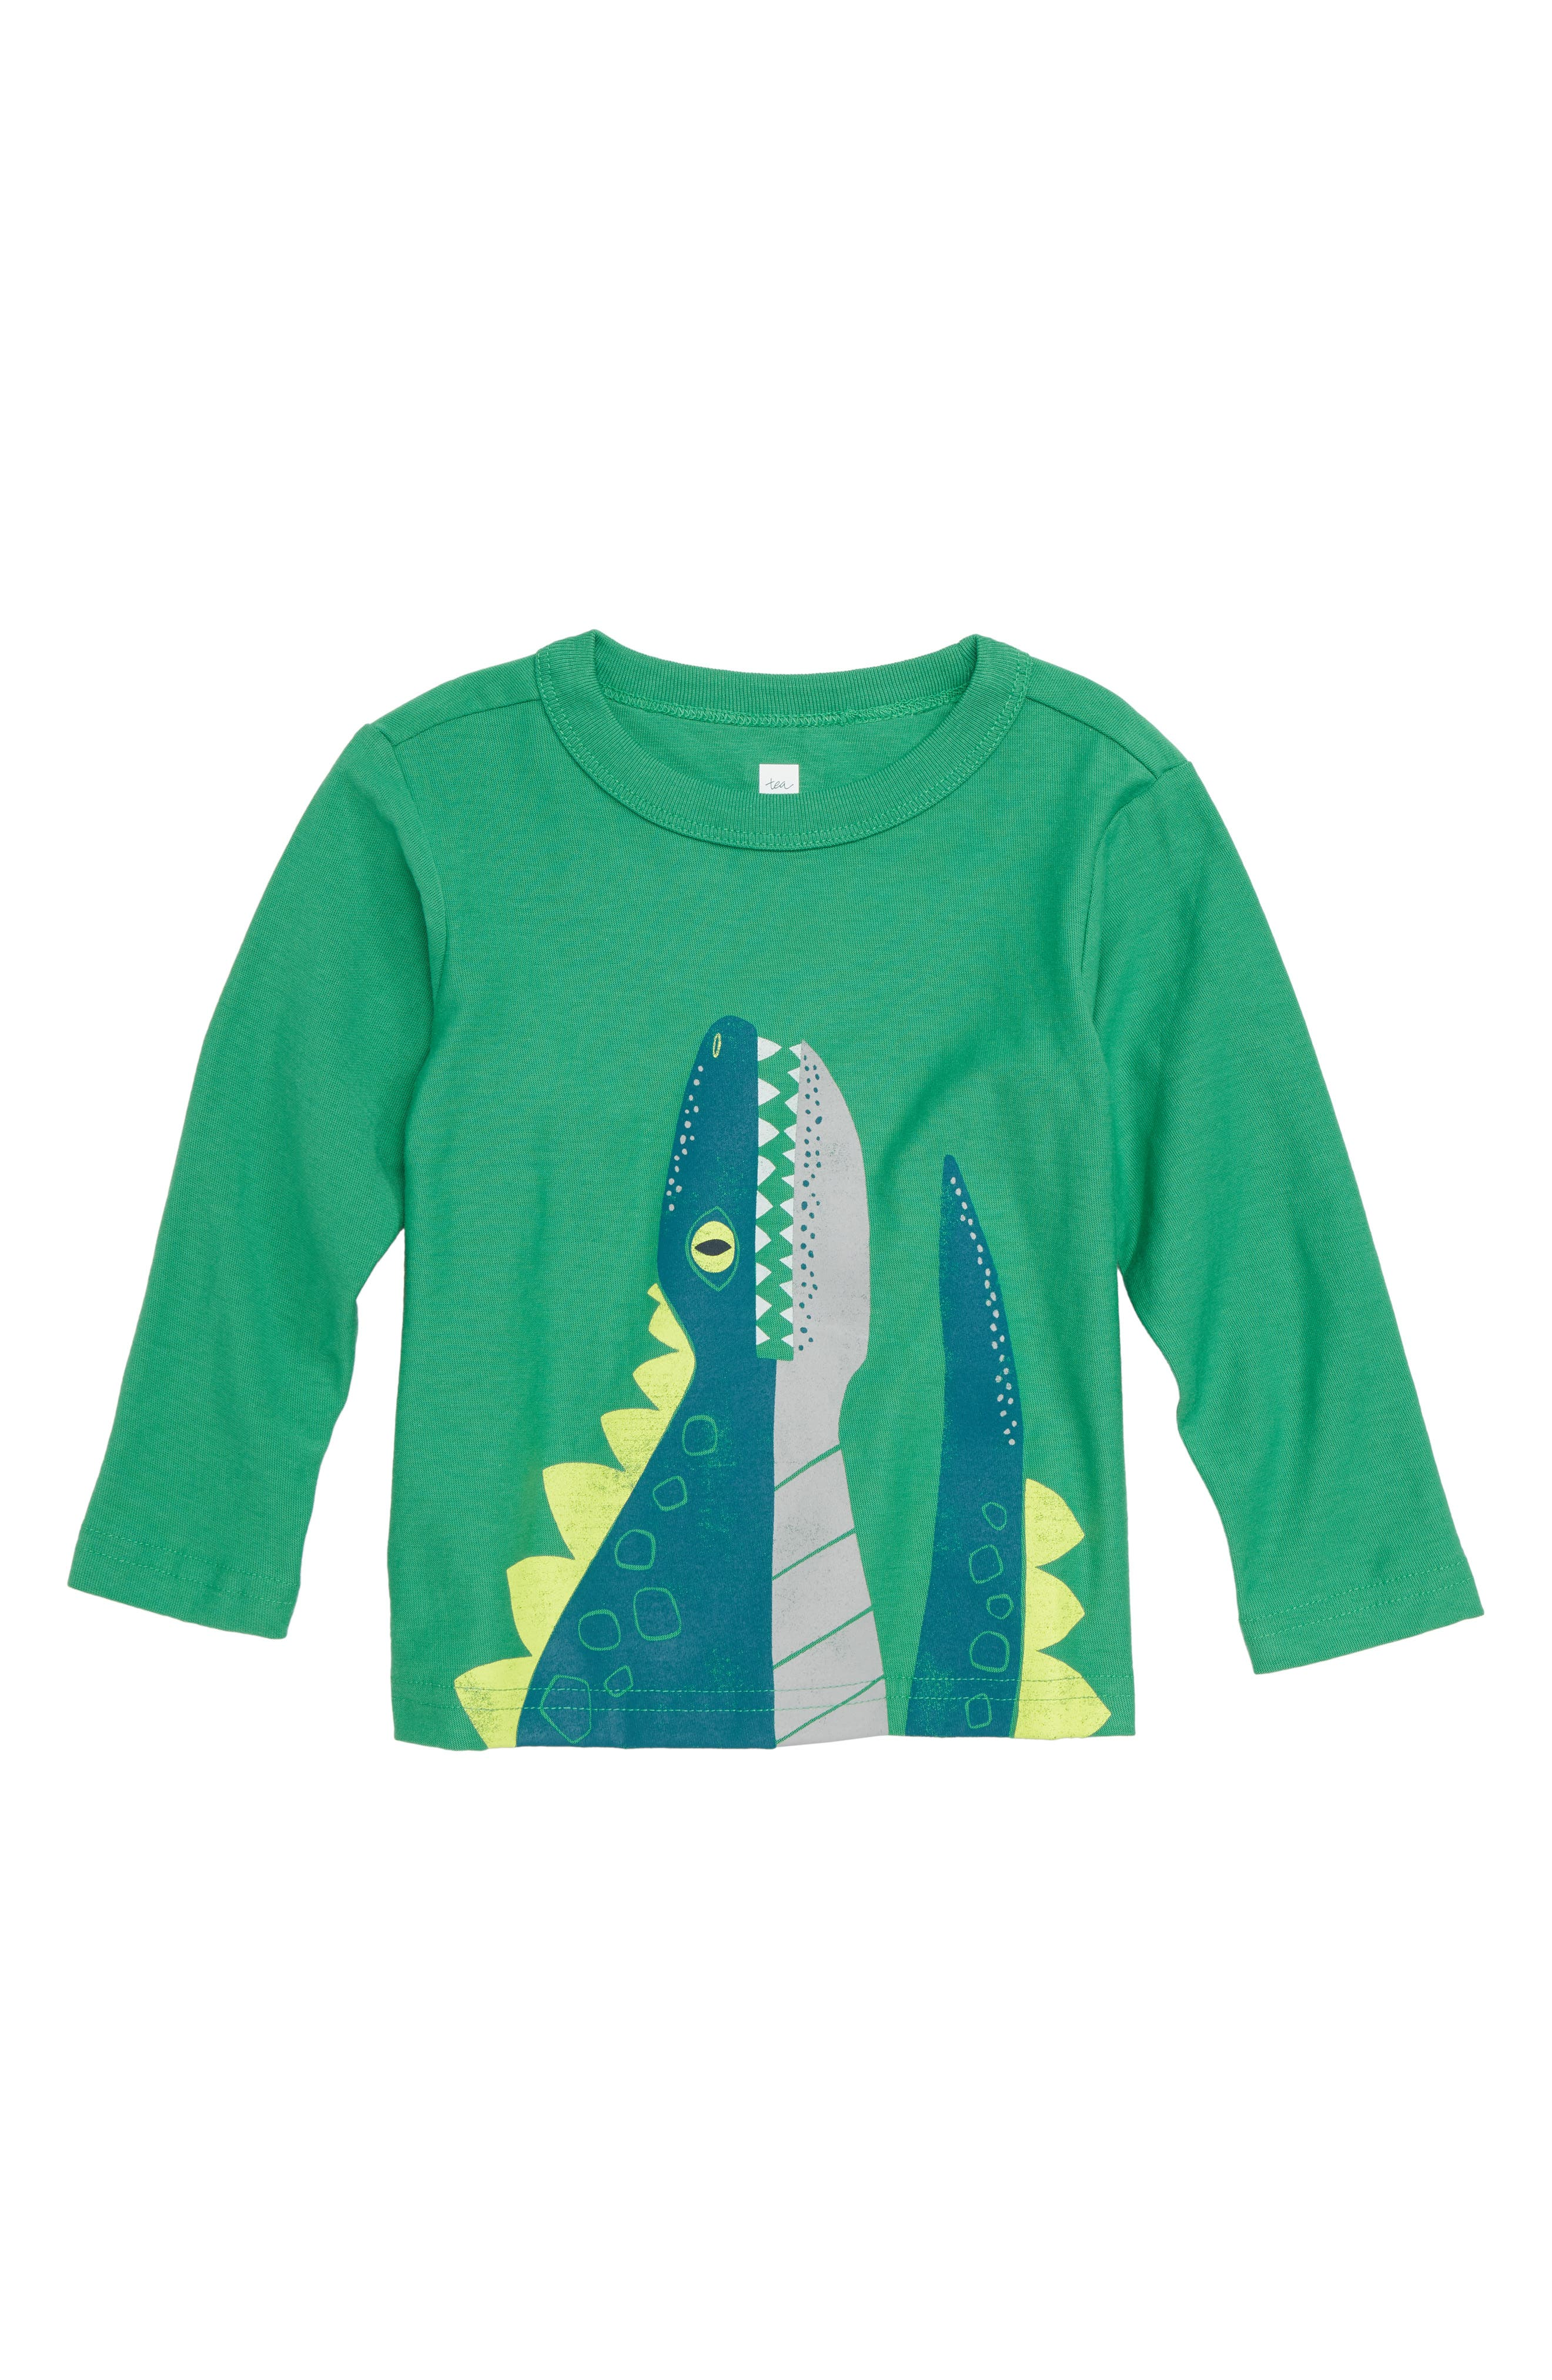 Dino T-Shirt,                         Main,                         color, SPINACH